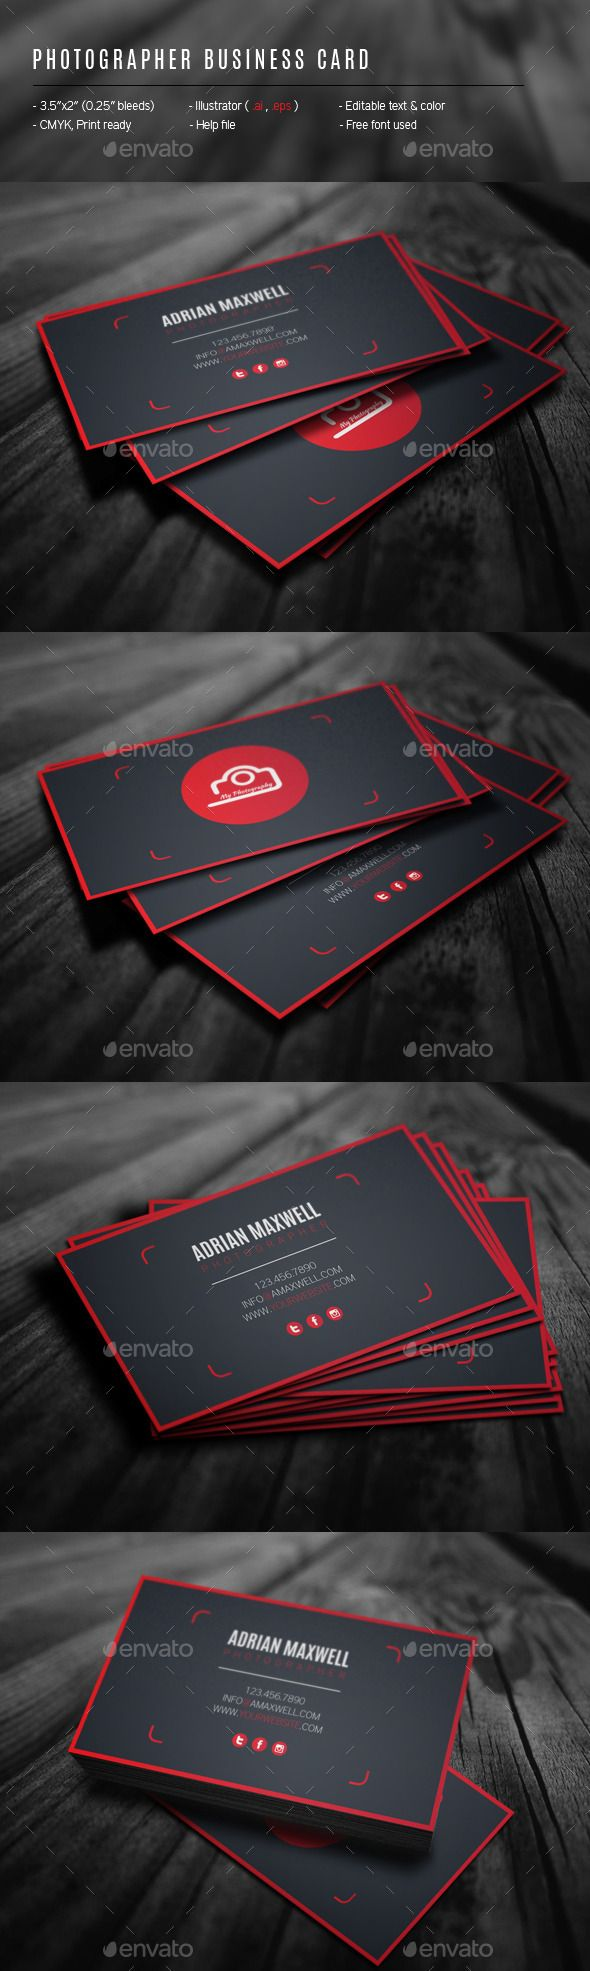 Photographer business card template design download http photographer business card template design download httpgraphicriveritemphotographer business card12447034refksioks reheart Images